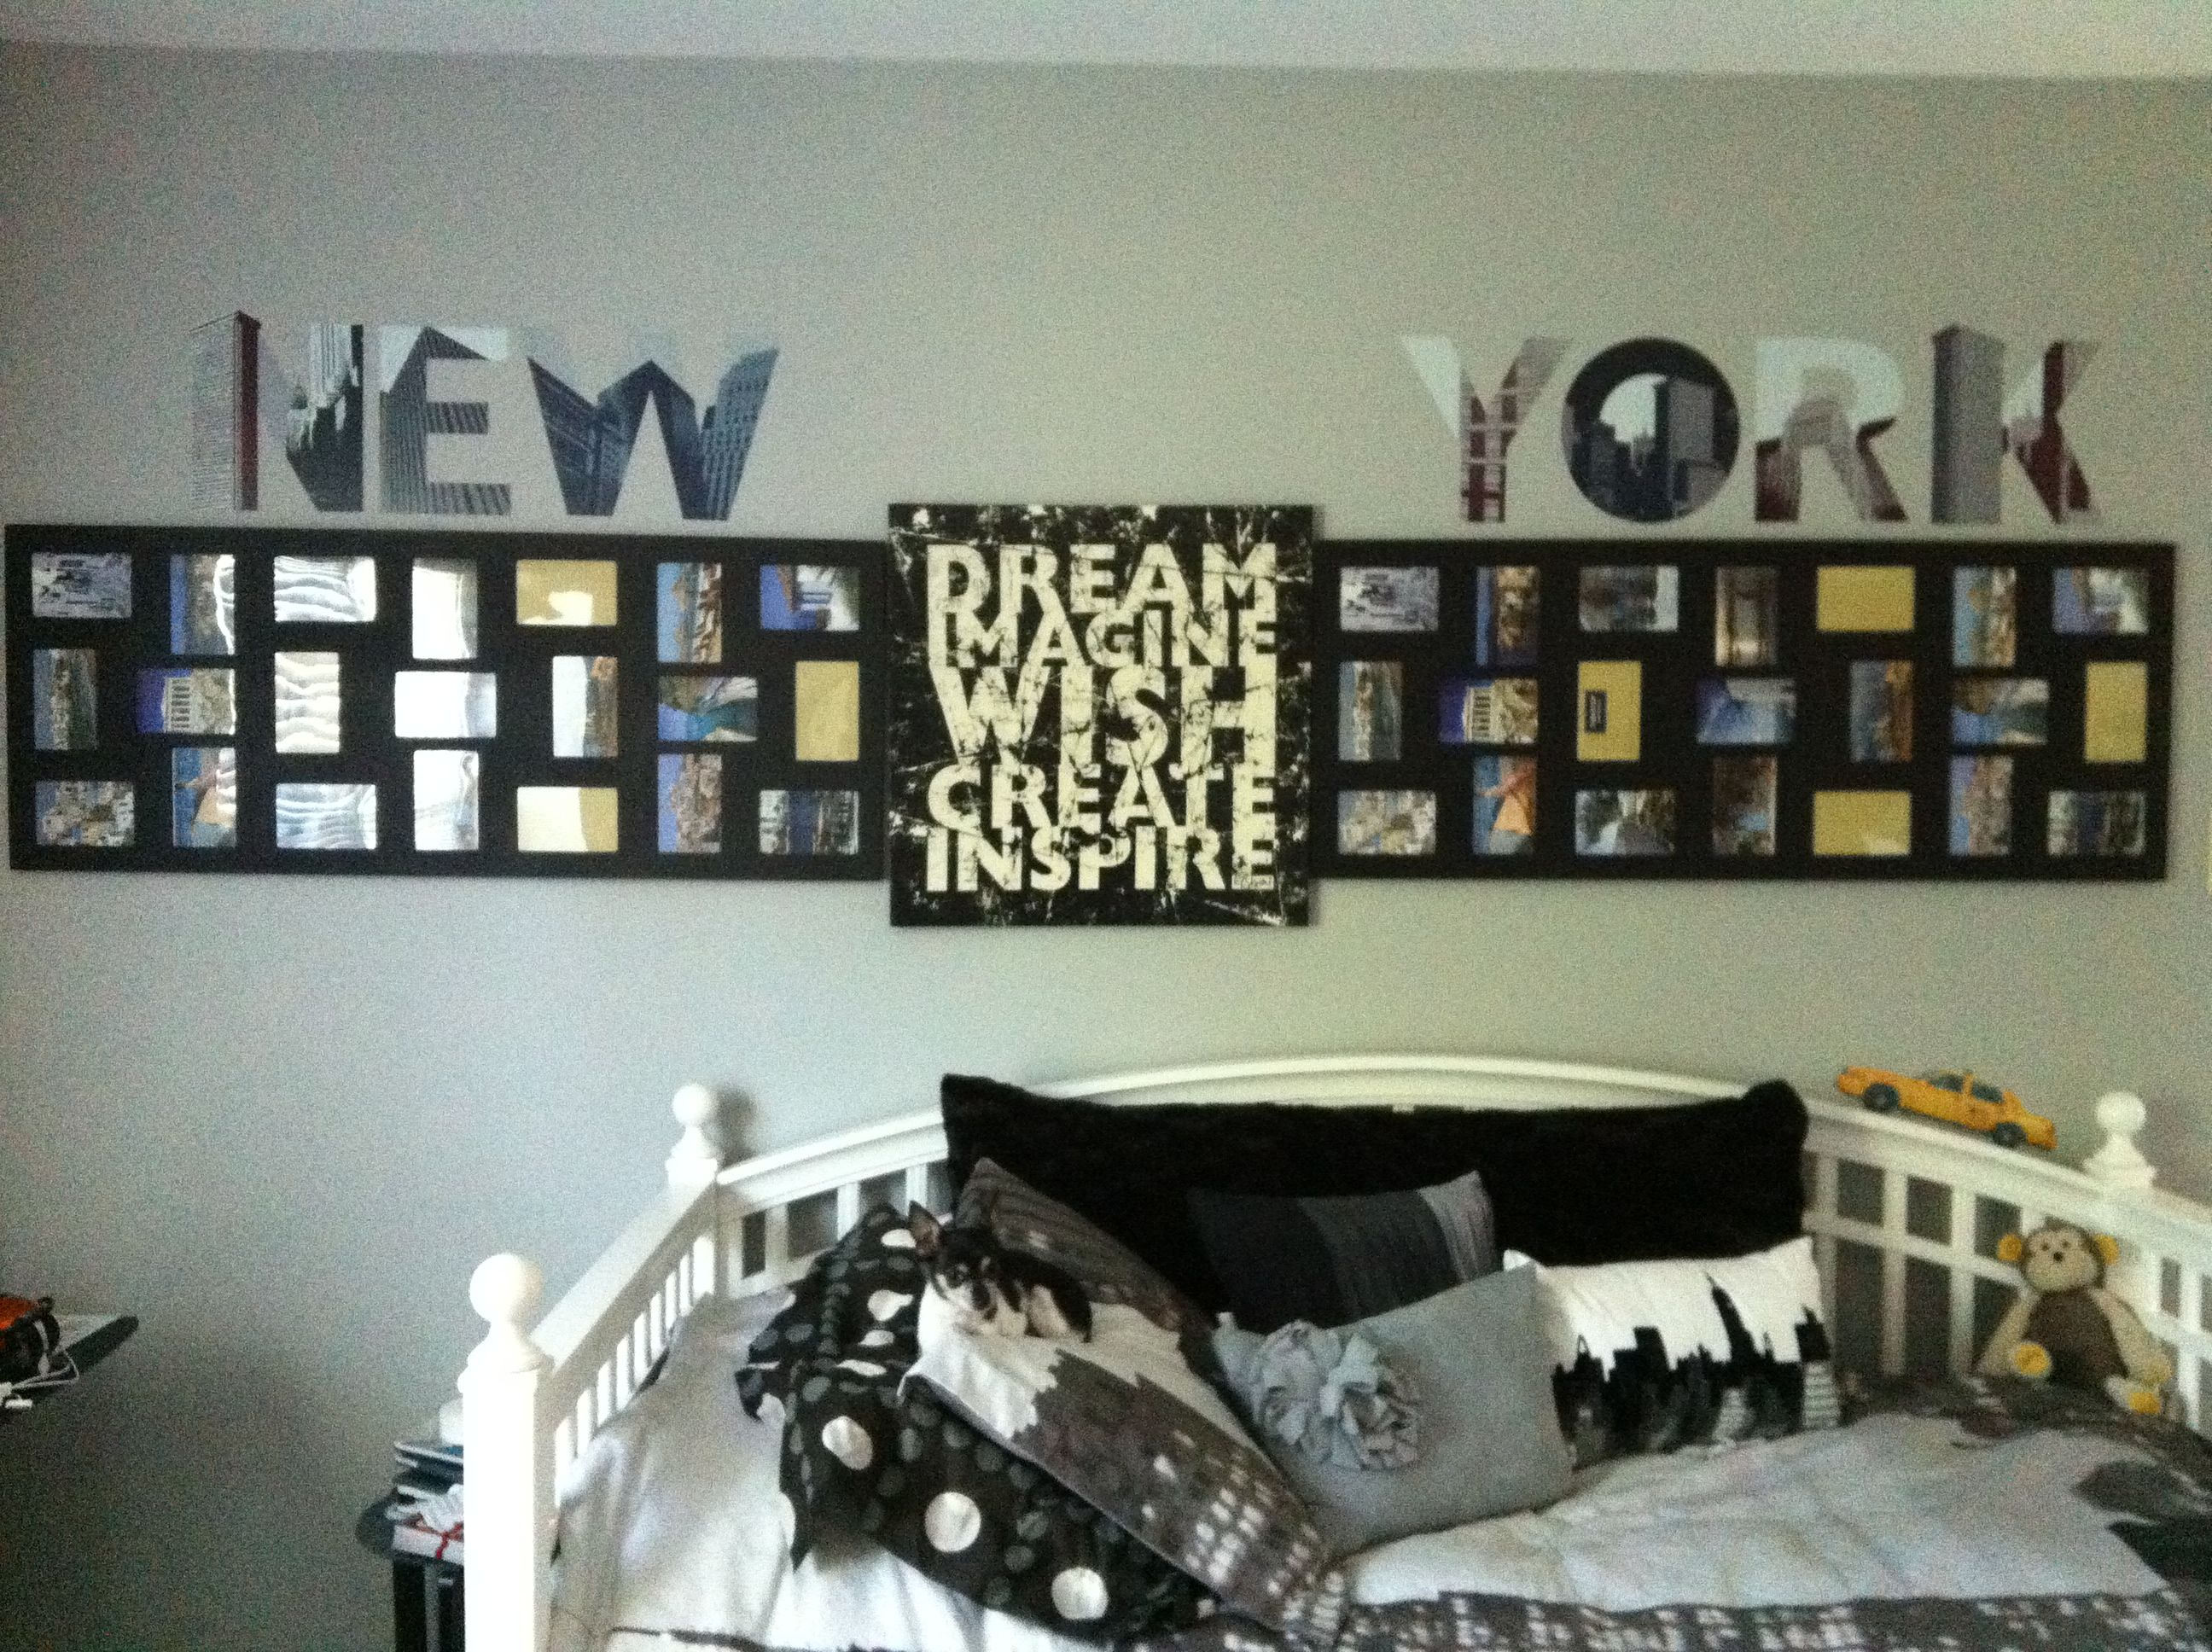 Addy S Broadway Style Room With A New York Theme Two Large Photo Frames Turned Sideways To